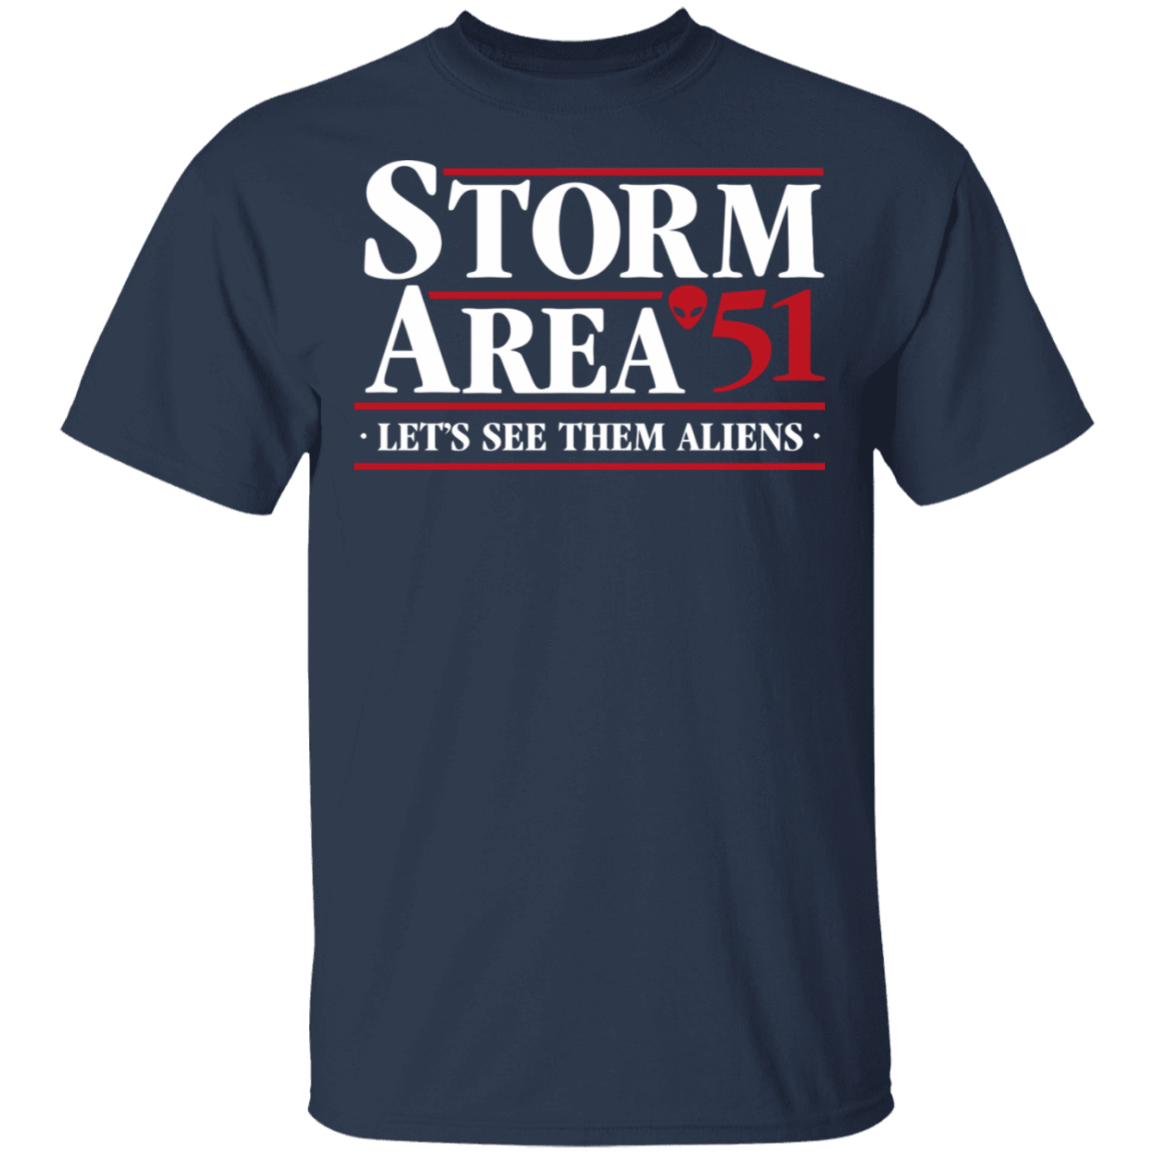 Storm Area 51 - Let's See Them Aliens - September 20 T-Shirts, Hoodies, Tank 22-111-79271383-250 - Tee Ript